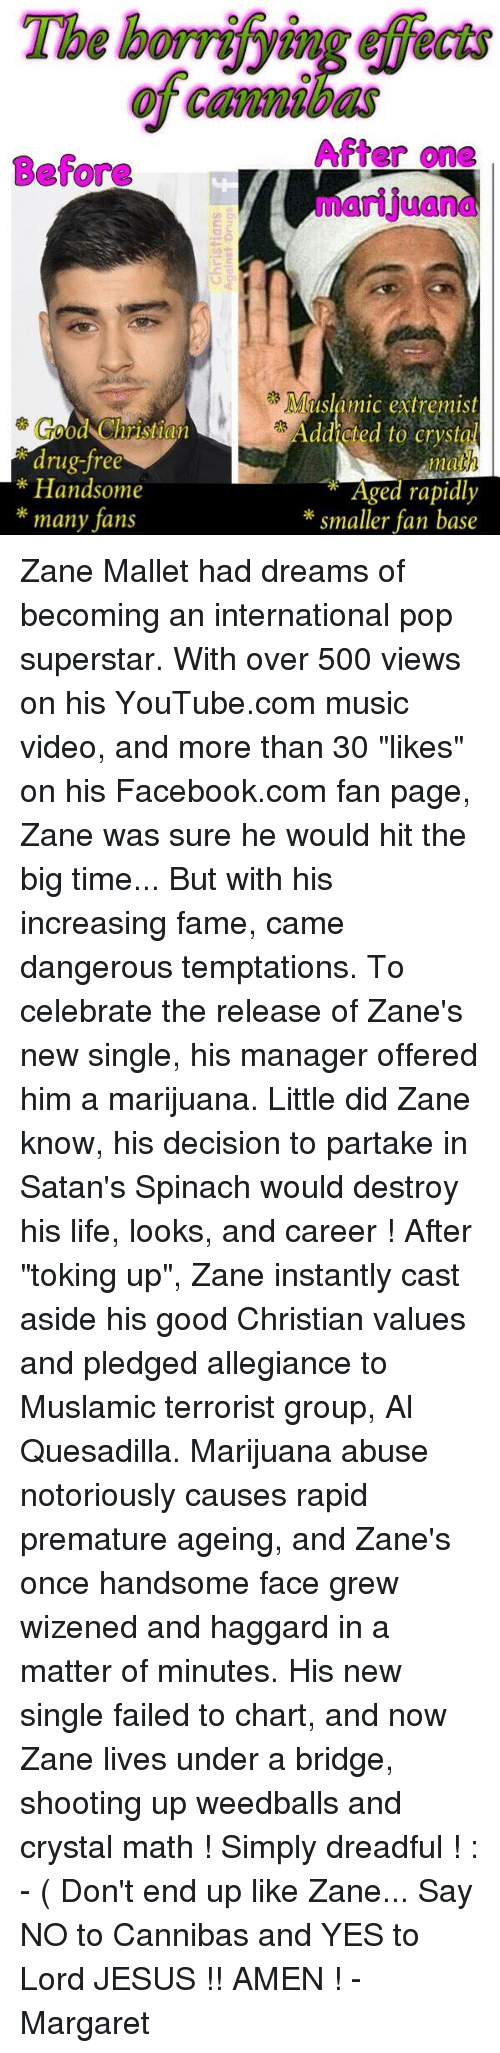 """drug free: Before  drug-free  Handsome  many fans  After one  Muslamic extremist  addicted to Crysta  mat  Aged rapidly  smaller fan base Zane Mallet had dreams of becoming an international pop superstar. With over 500 views on his YouTube.com music video, and more than 30 """"likes"""" on his Facebook.com fan page, Zane was sure he would hit the big time...  But with his increasing fame, came dangerous temptations. To celebrate the release of Zane's new single, his manager offered him a marijuana. Little did Zane know, his decision to partake in Satan's Spinach would destroy his life, looks, and career !   After """"toking up"""",  Zane instantly cast aside his good Christian values and pledged allegiance to Muslamic terrorist group, Al Quesadilla. Marijuana abuse notoriously causes rapid premature ageing, and Zane's once handsome face grew wizened and haggard in a matter of minutes. His new single failed to chart, and now Zane lives under a bridge, shooting up weedballs and crystal math ! Simply dreadful ! : - (   Don't end up like Zane... Say NO to Cannibas and YES to Lord JESUS !!   AMEN ! - Margaret"""